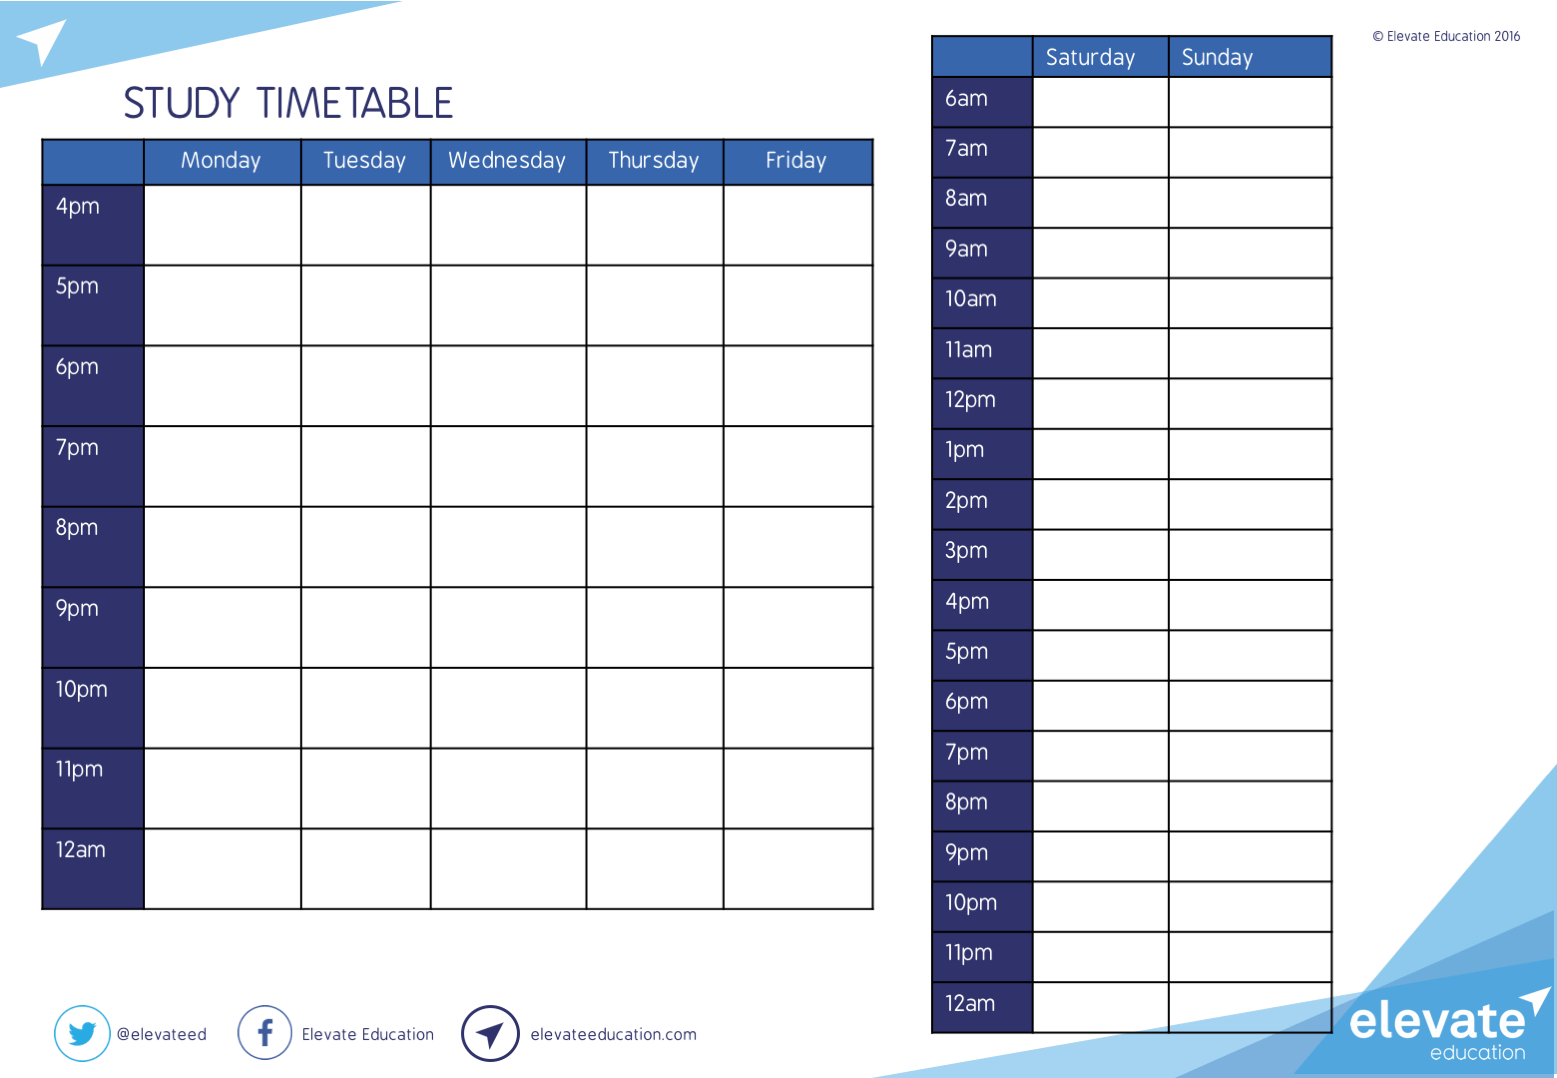 Study Timetable Elevate Education